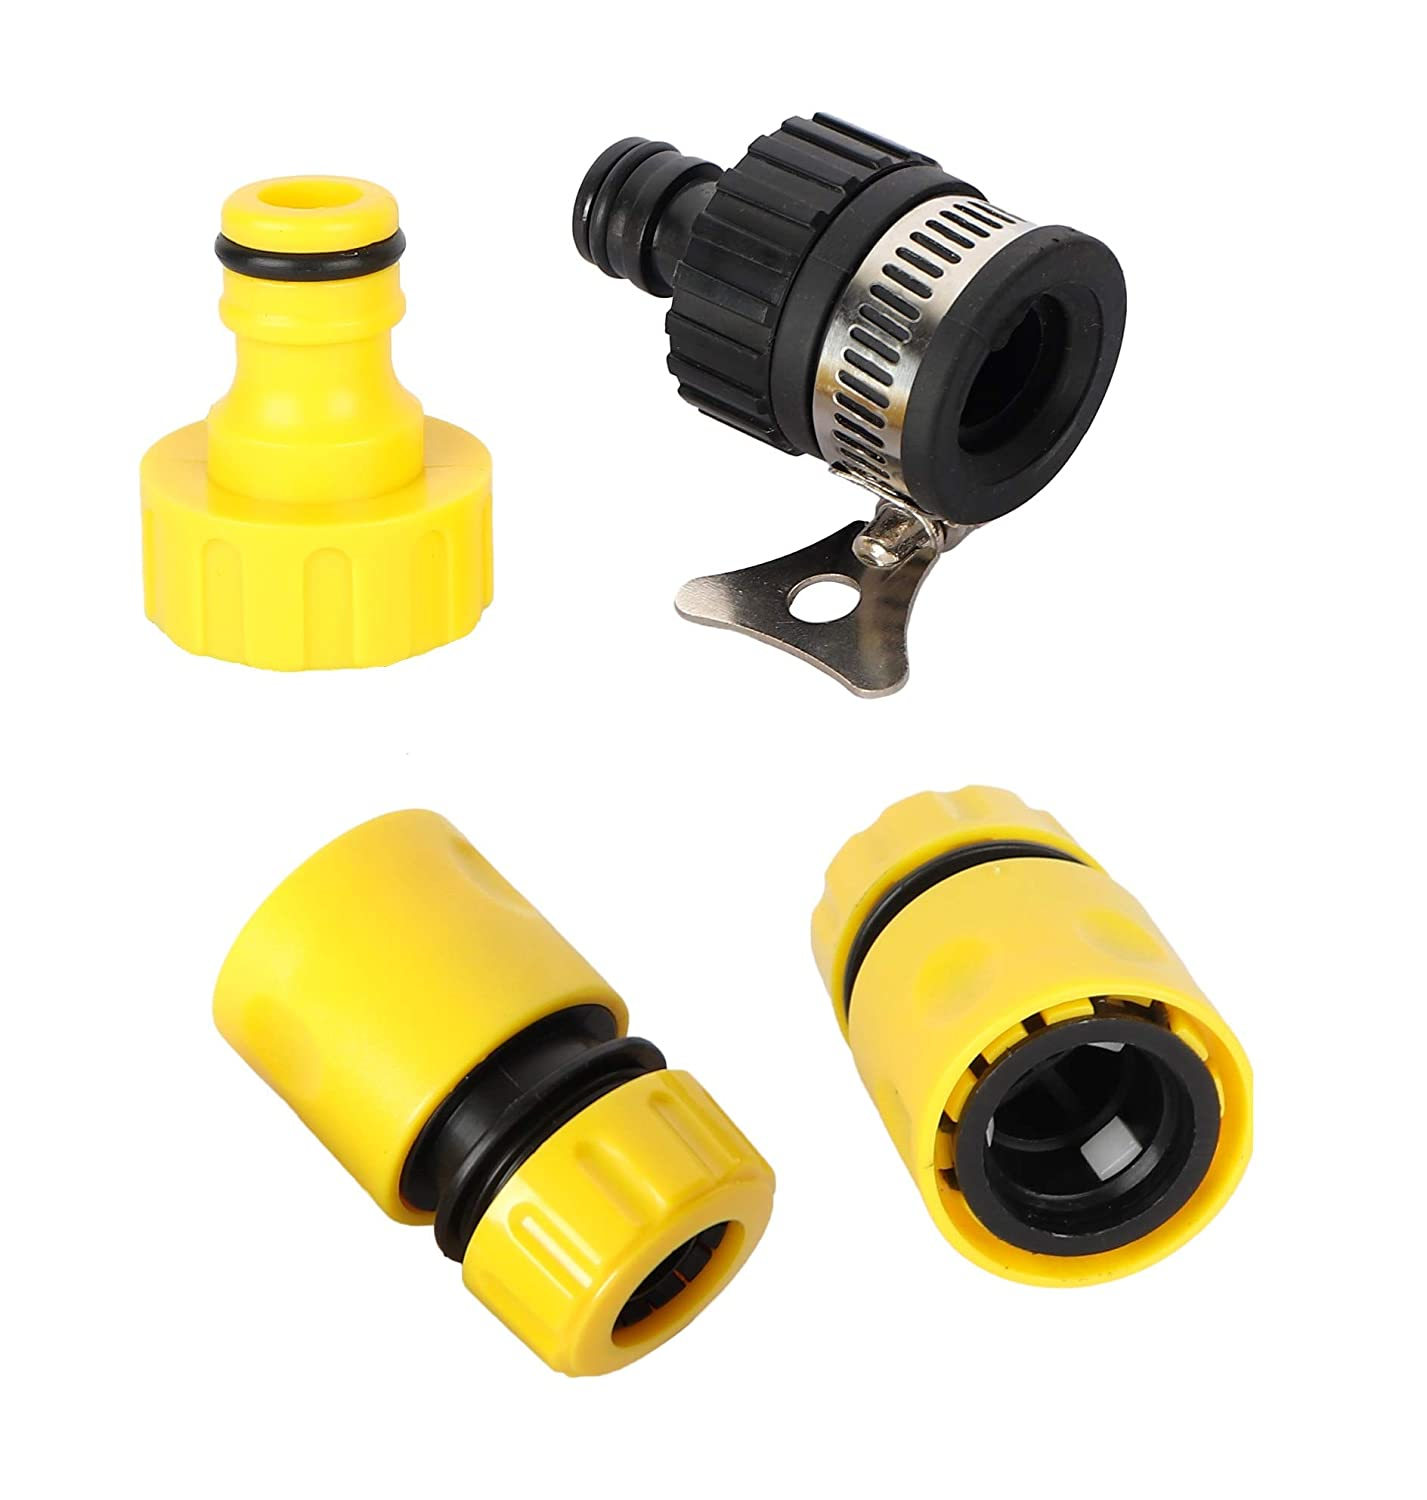 VMTC Tap Connector Set (2 Quick Connector, 1 tap Connector & Adapter) for Gardening & High Pressure Washer Like Karcher, Bosch